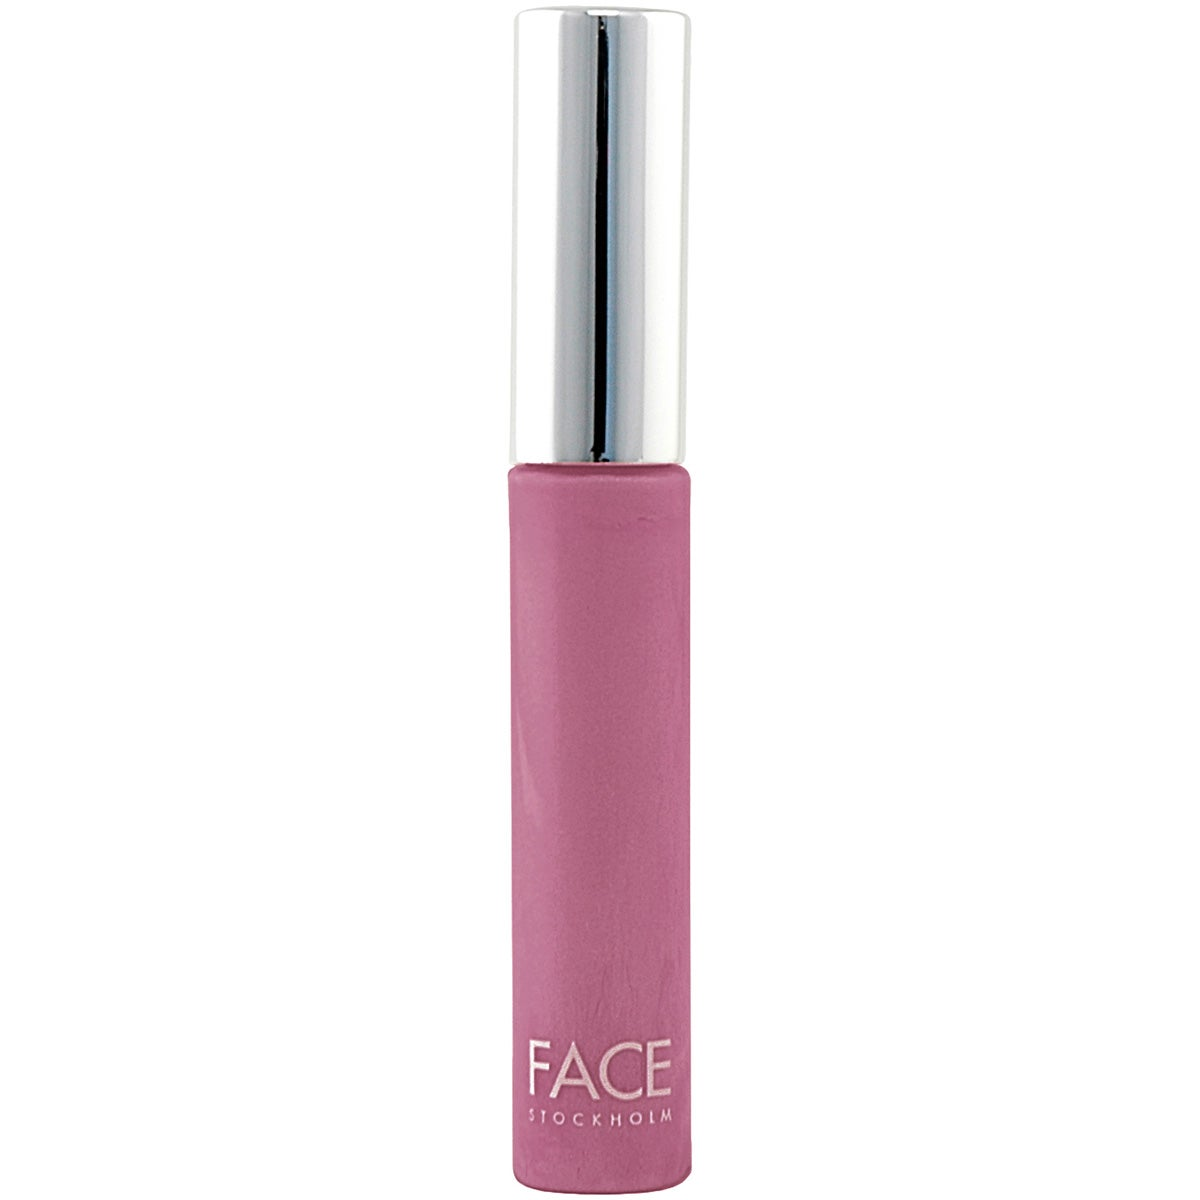 FACE Stockholm Lipgloss